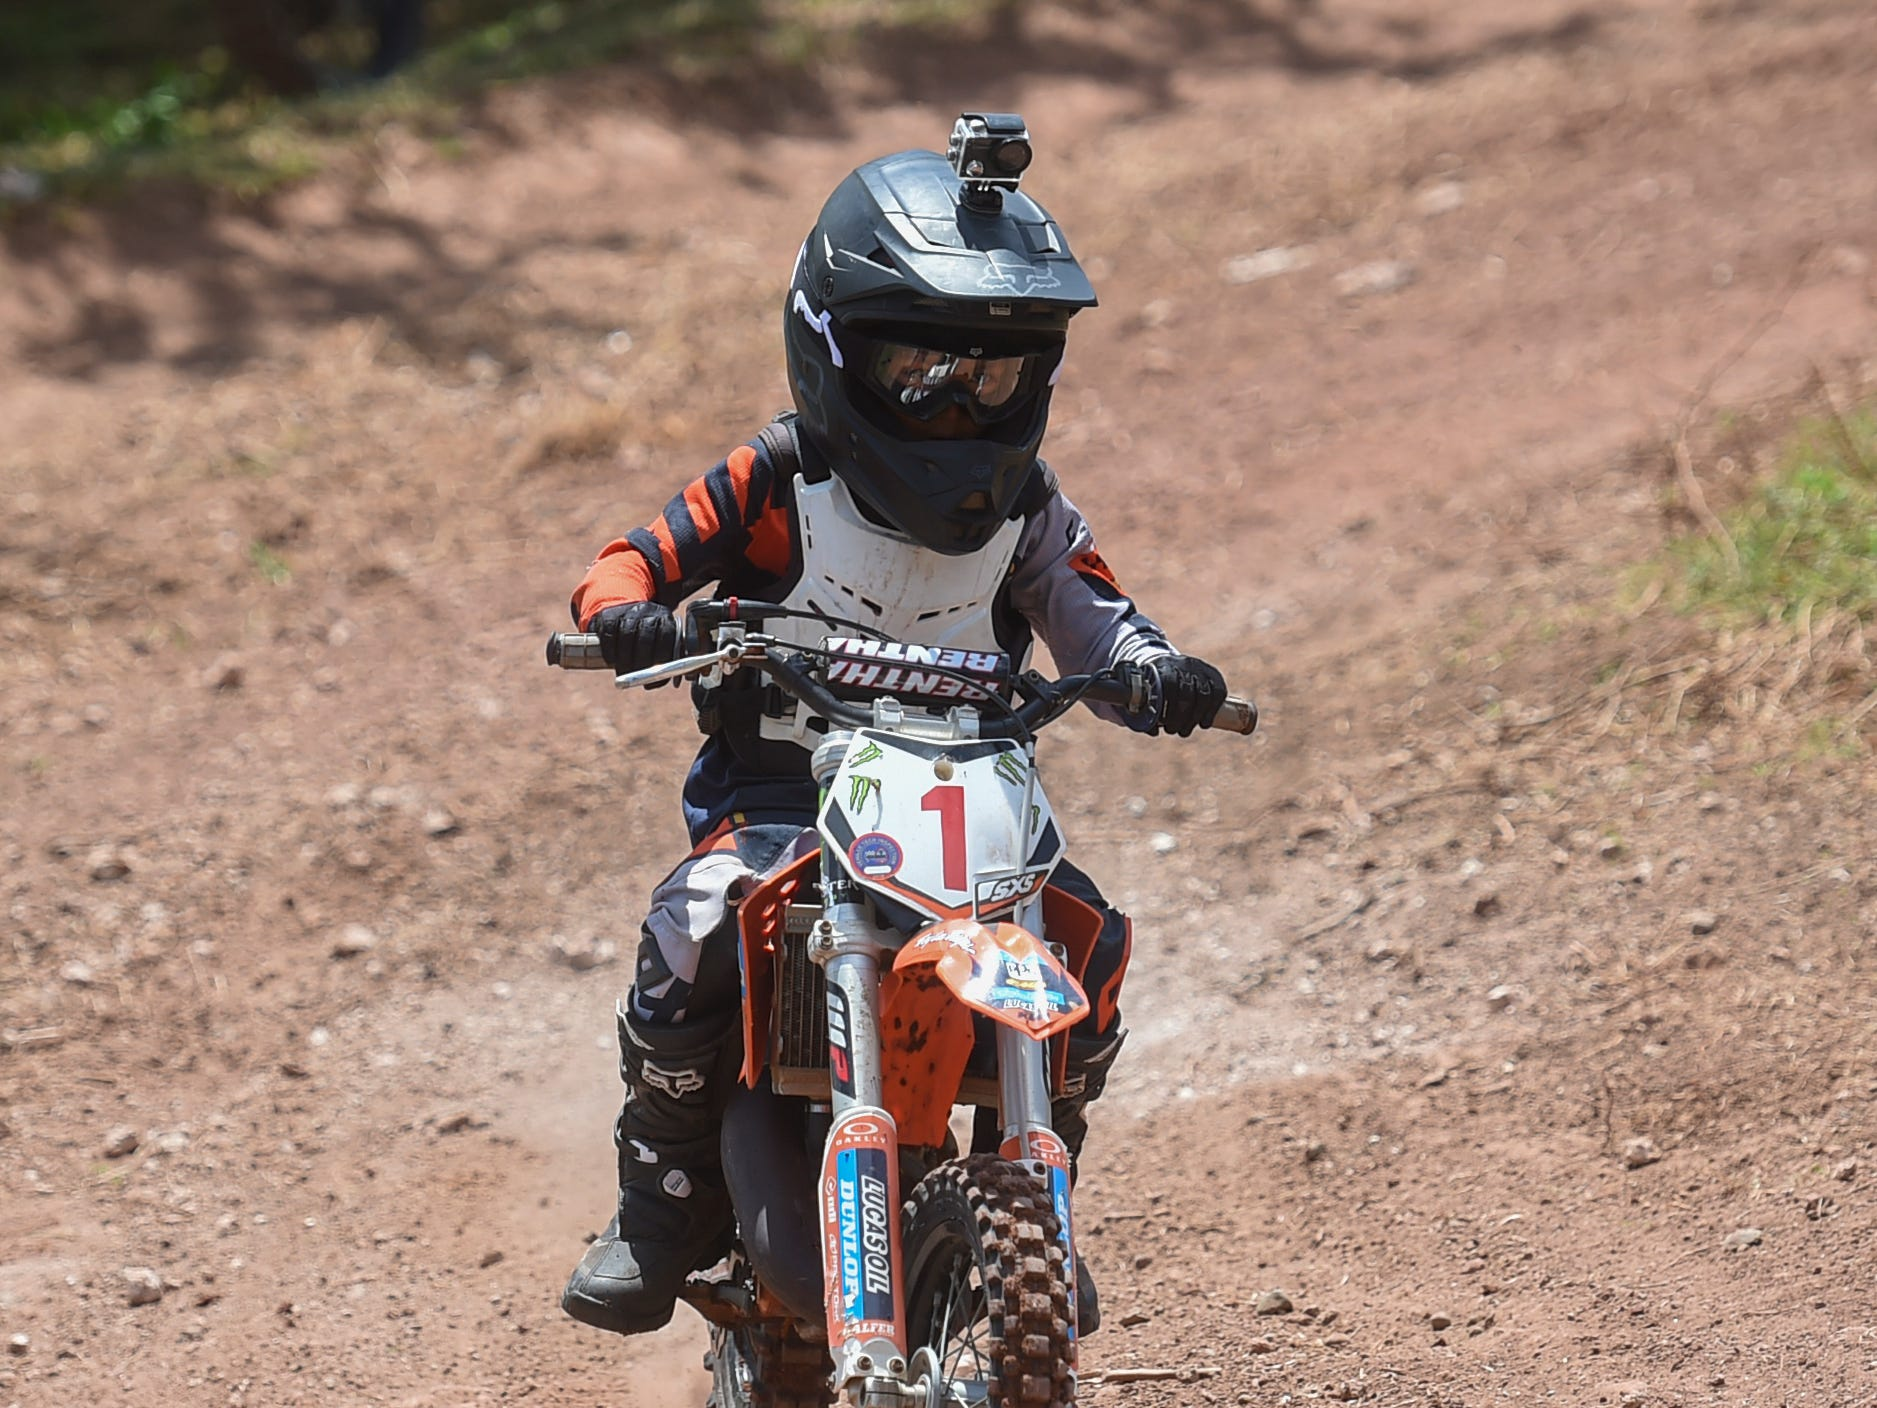 John Aguon competes in a 65cc motocross race during the Guam History and Chamorro Heritage Day Festival 2019 at Umatac Bay Park, March 10, 2019.